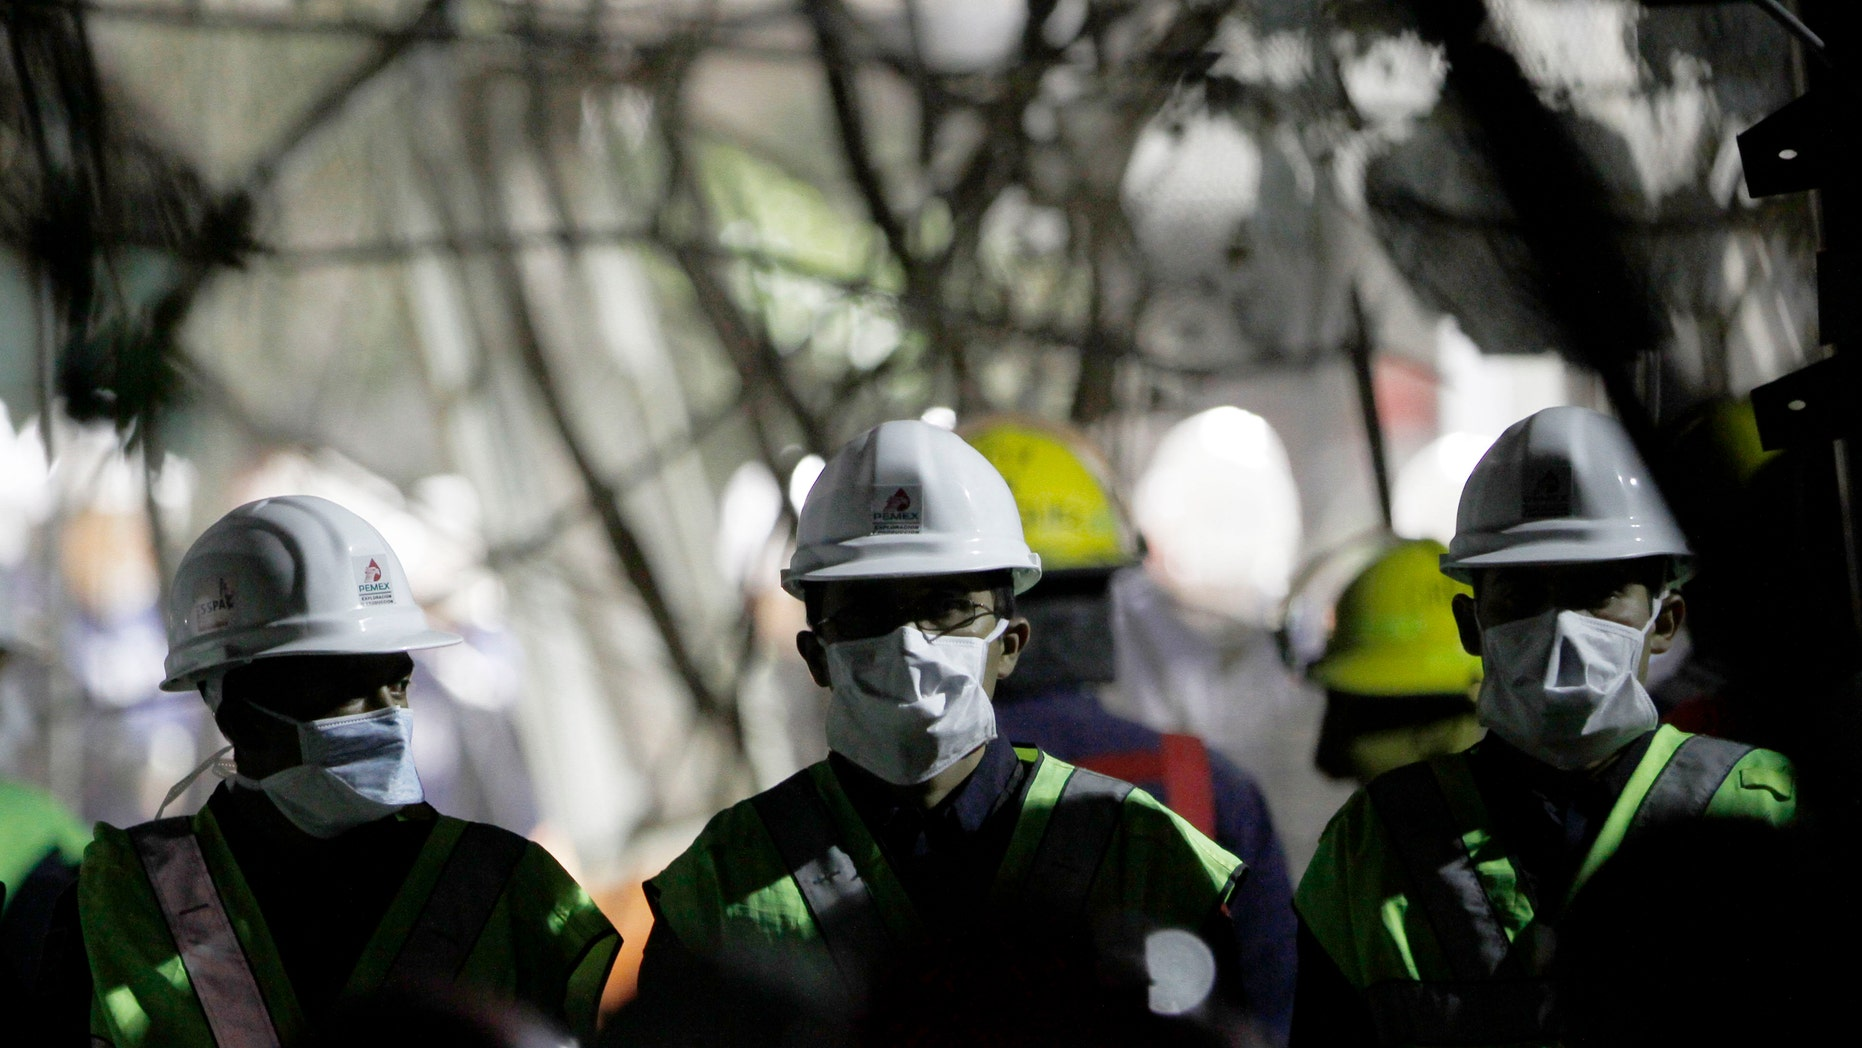 Employees cull through debris searching for office documents amid the rubble left from an office building explosion in Mexico City, Feb. 2. The death toll is now at 37.